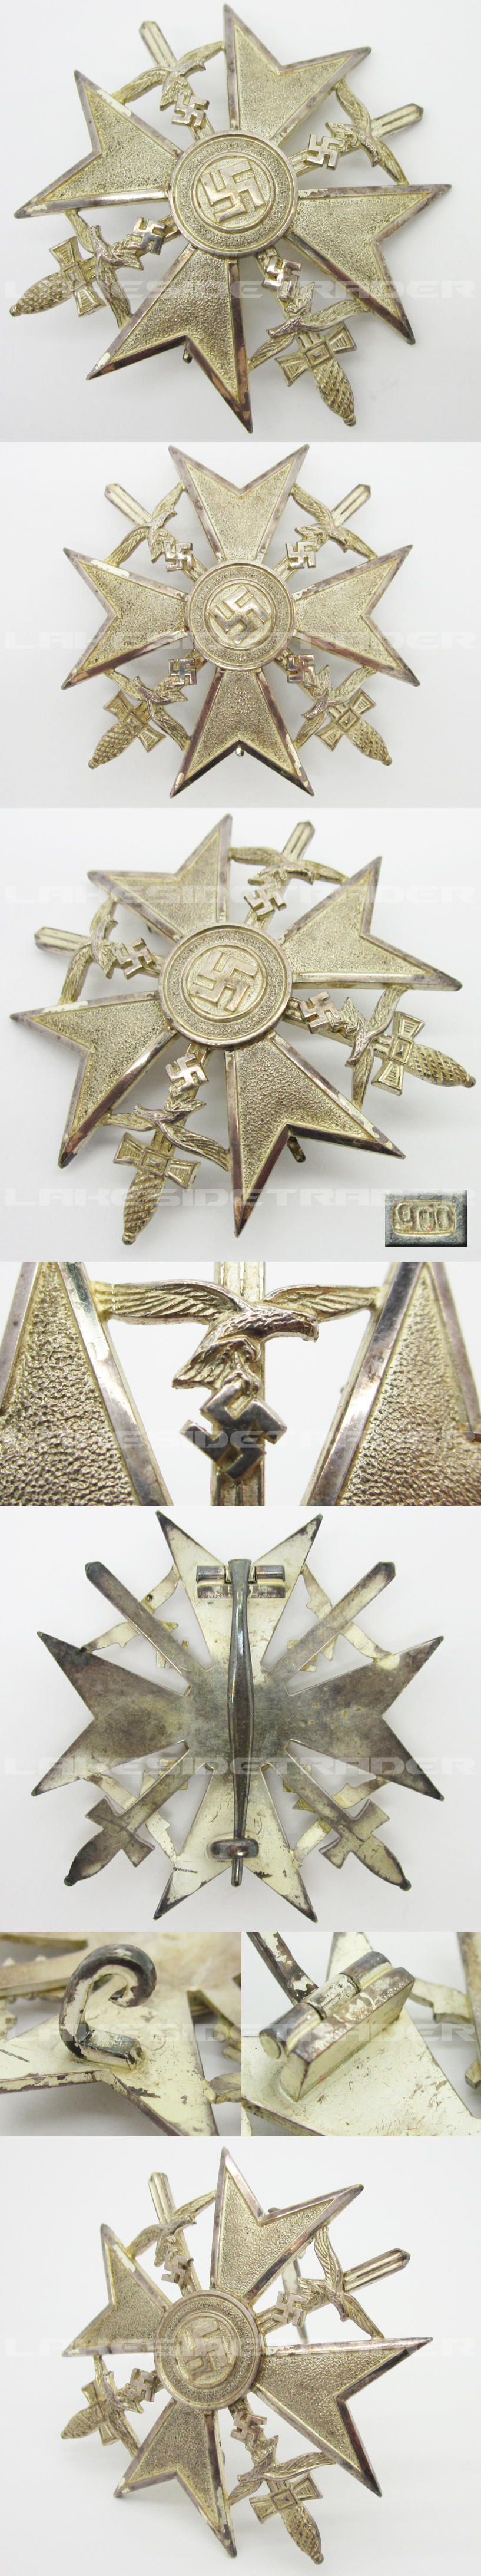 Silver Spanish Cross with Swords 900